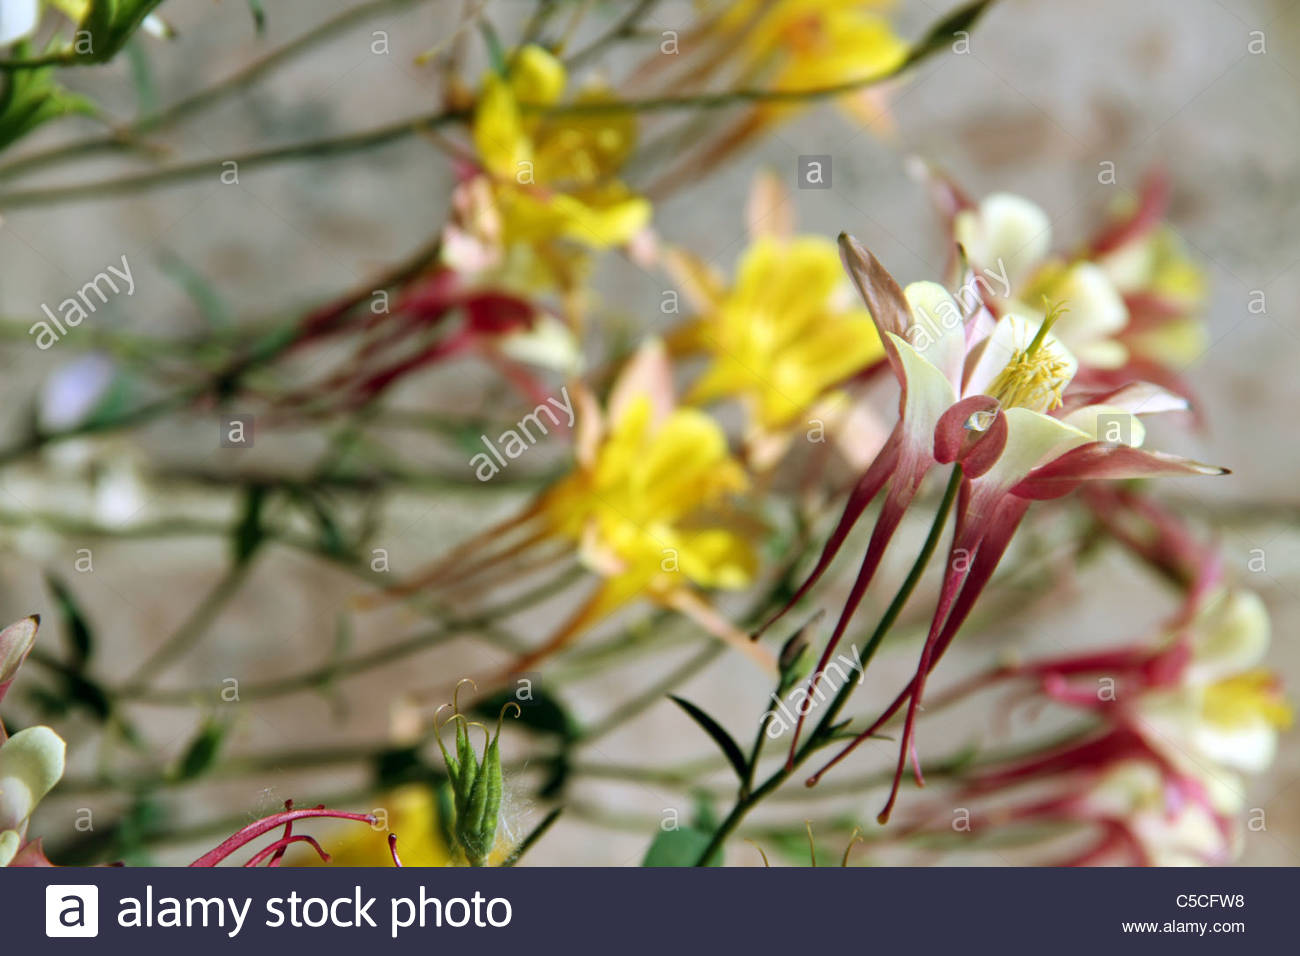 Columbine flower colors gallery flower wallpaper hd columbines flowers image collections flower wallpaper hd magnificent columbine flower colors ornament coloring page delicate red izmirmasajfo